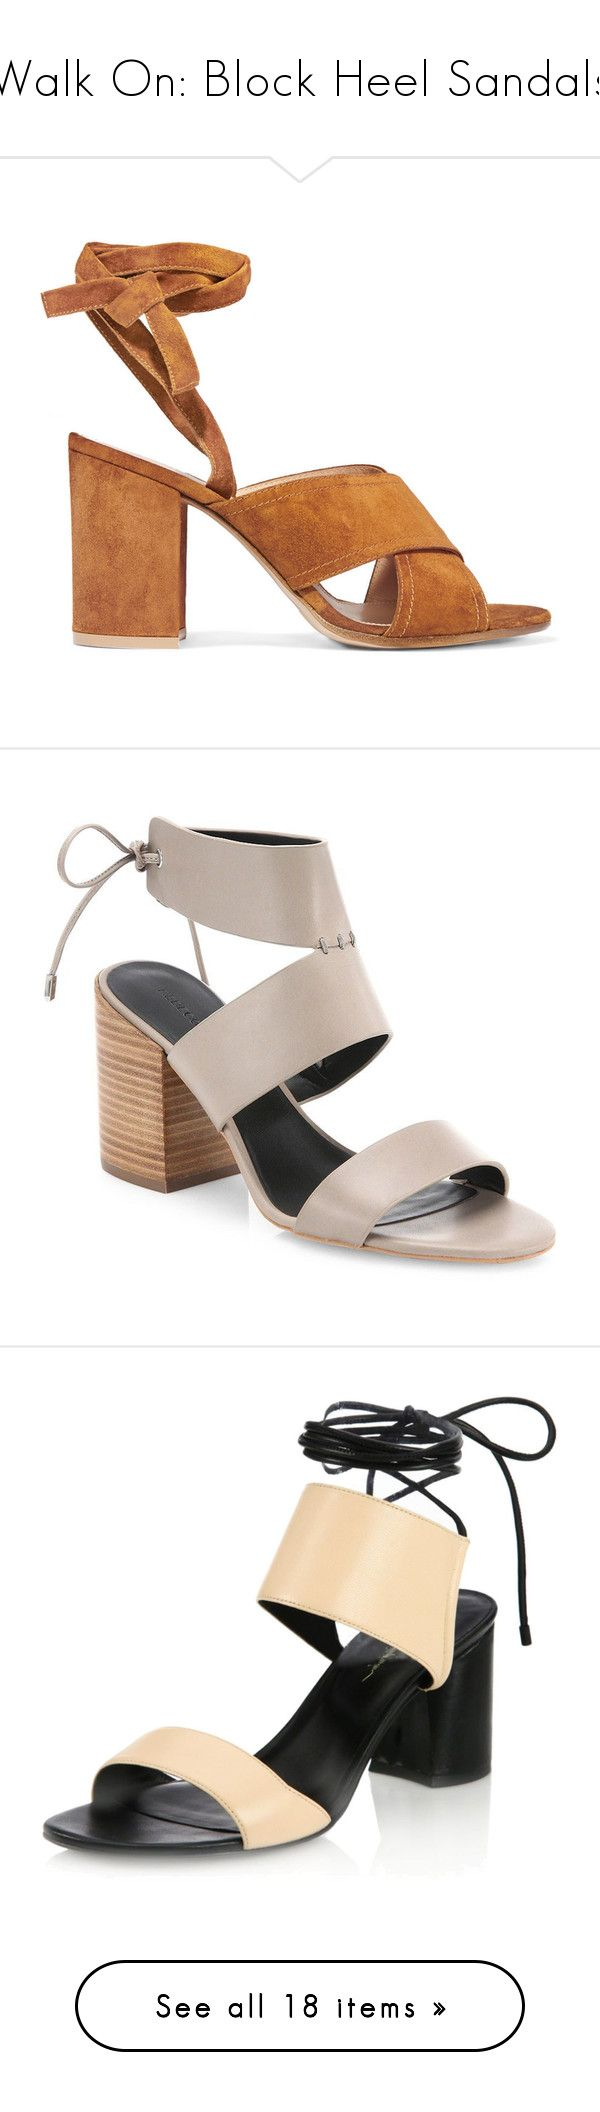 """""""Walk On: Block Heel Sandals"""" by polyvore-editorial ❤ liked on Polyvore featuring blockheelsandals, shoes, sandals, heels, brown, chunky heel sandals, ankle tie sandals, brown heeled sandals, ankle strap shoes and strappy sandals"""